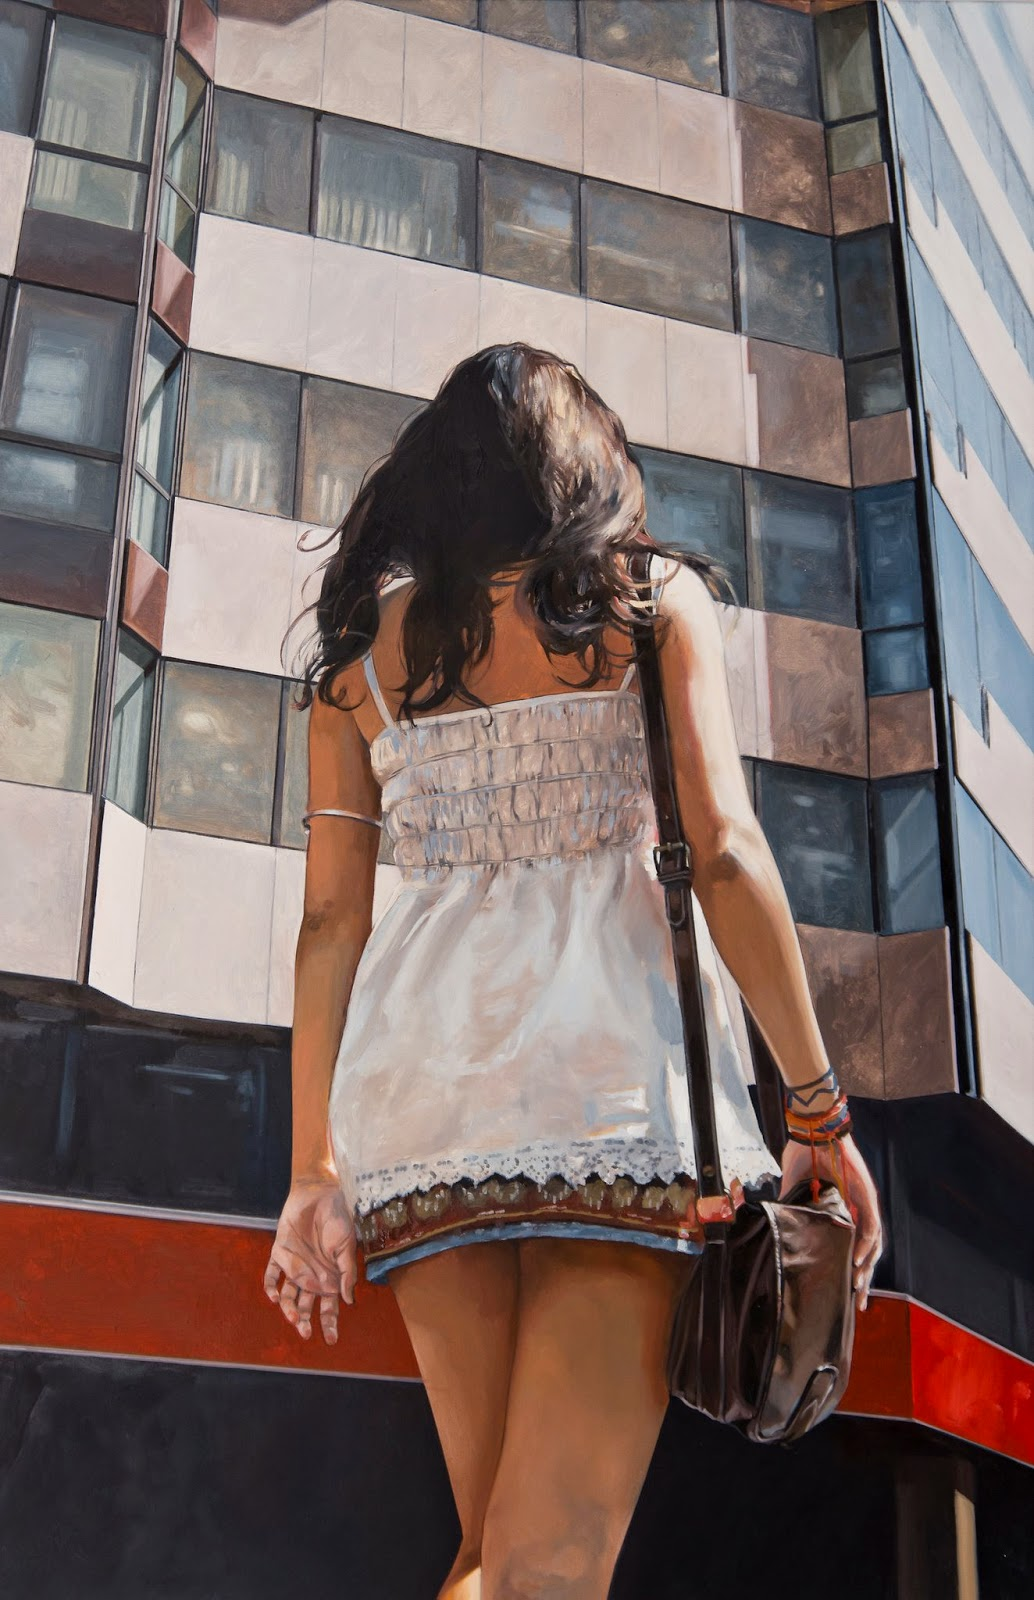 Hyper Realistic Girls Figure Painting By Marc Figueras (15)